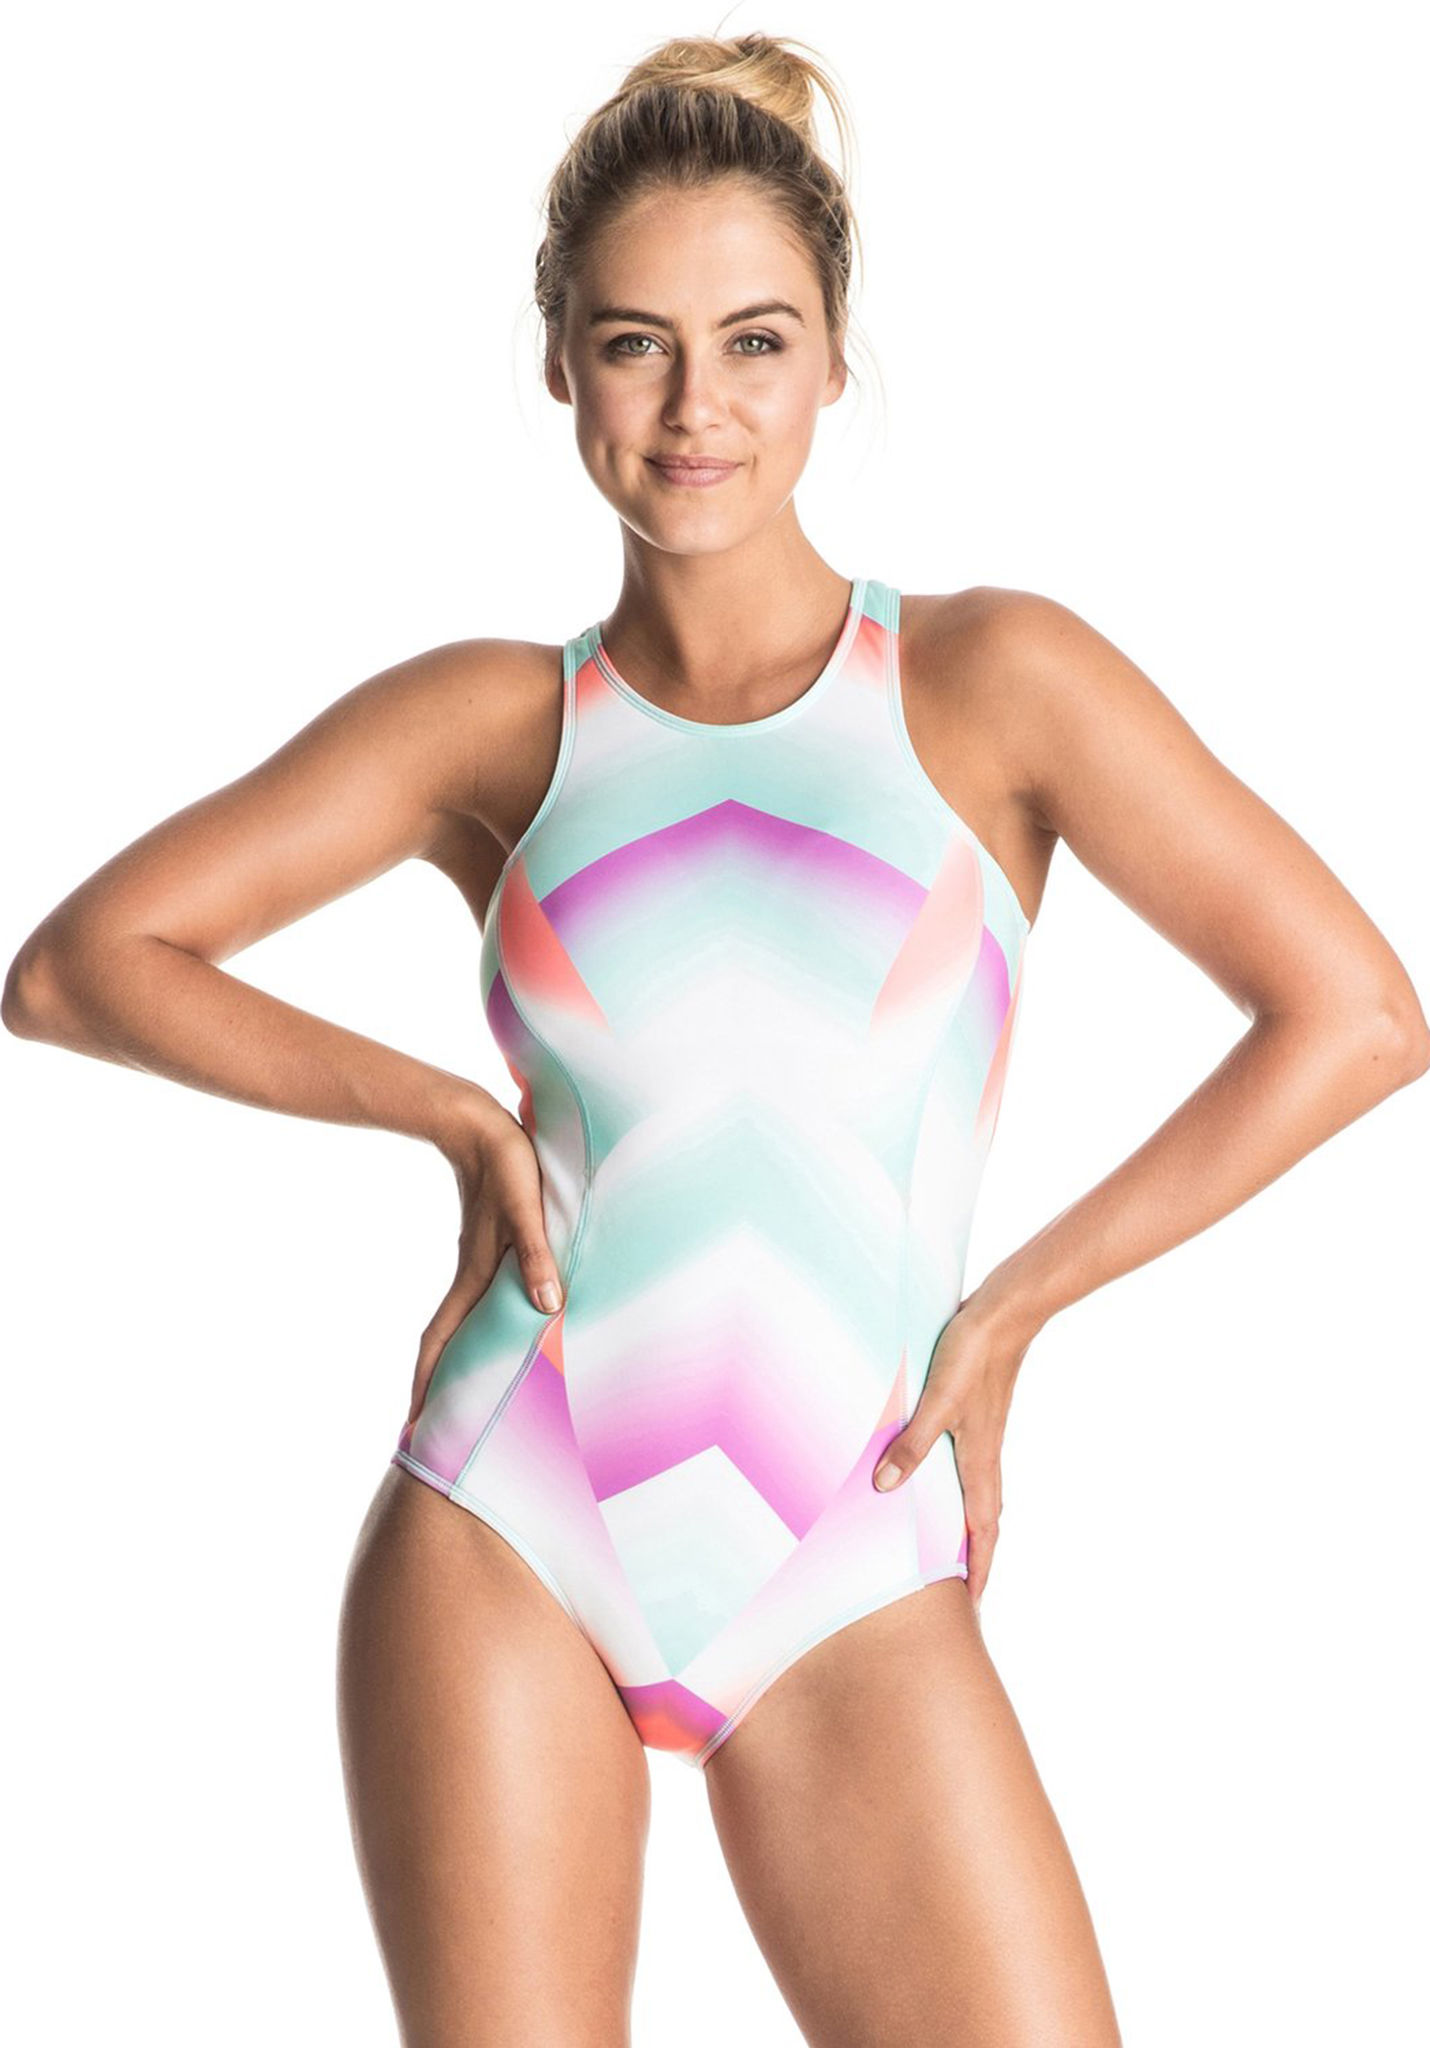 d1f99f31d2 Roxy Pop Surf - One-piece Swimsuit for Women - Pink - Planet Sports